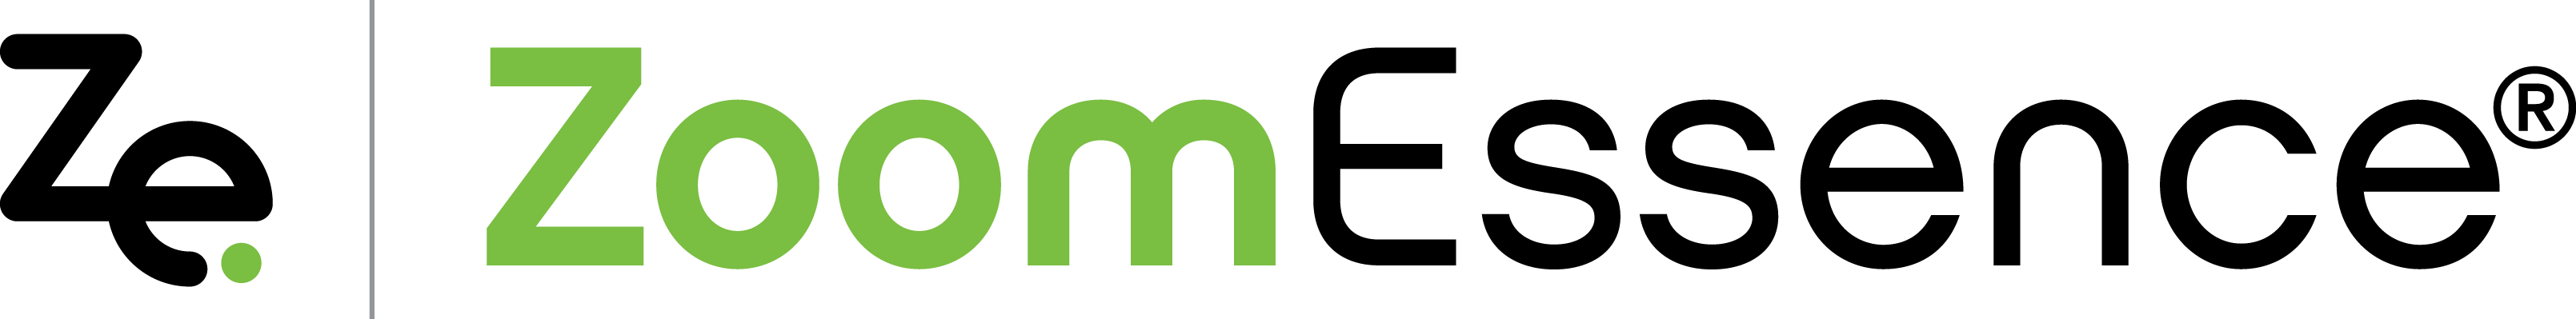 ZoomEssence logo for the 2019 Clean Label Conference